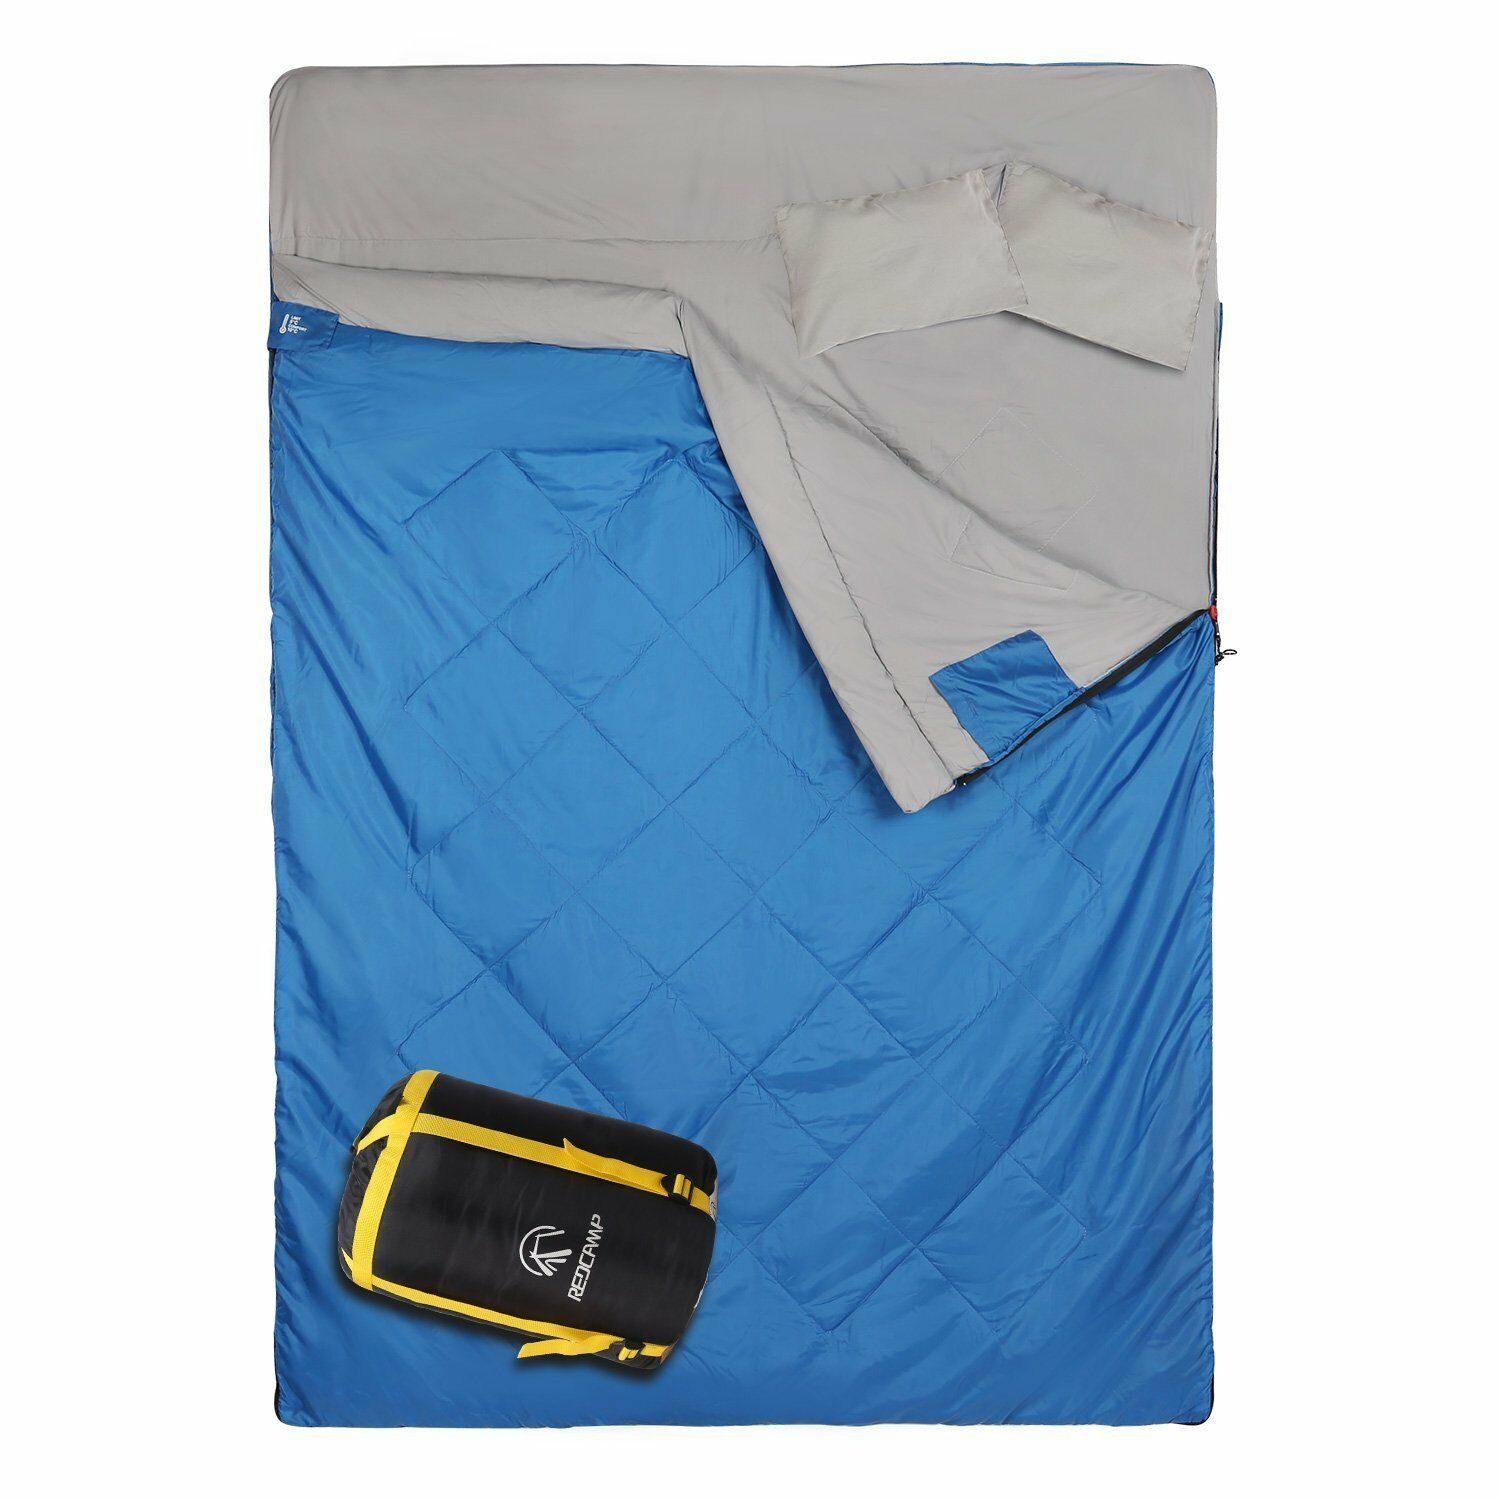 REDCAMP Double 2 Person Sleeping Bag for Camping Backpacking